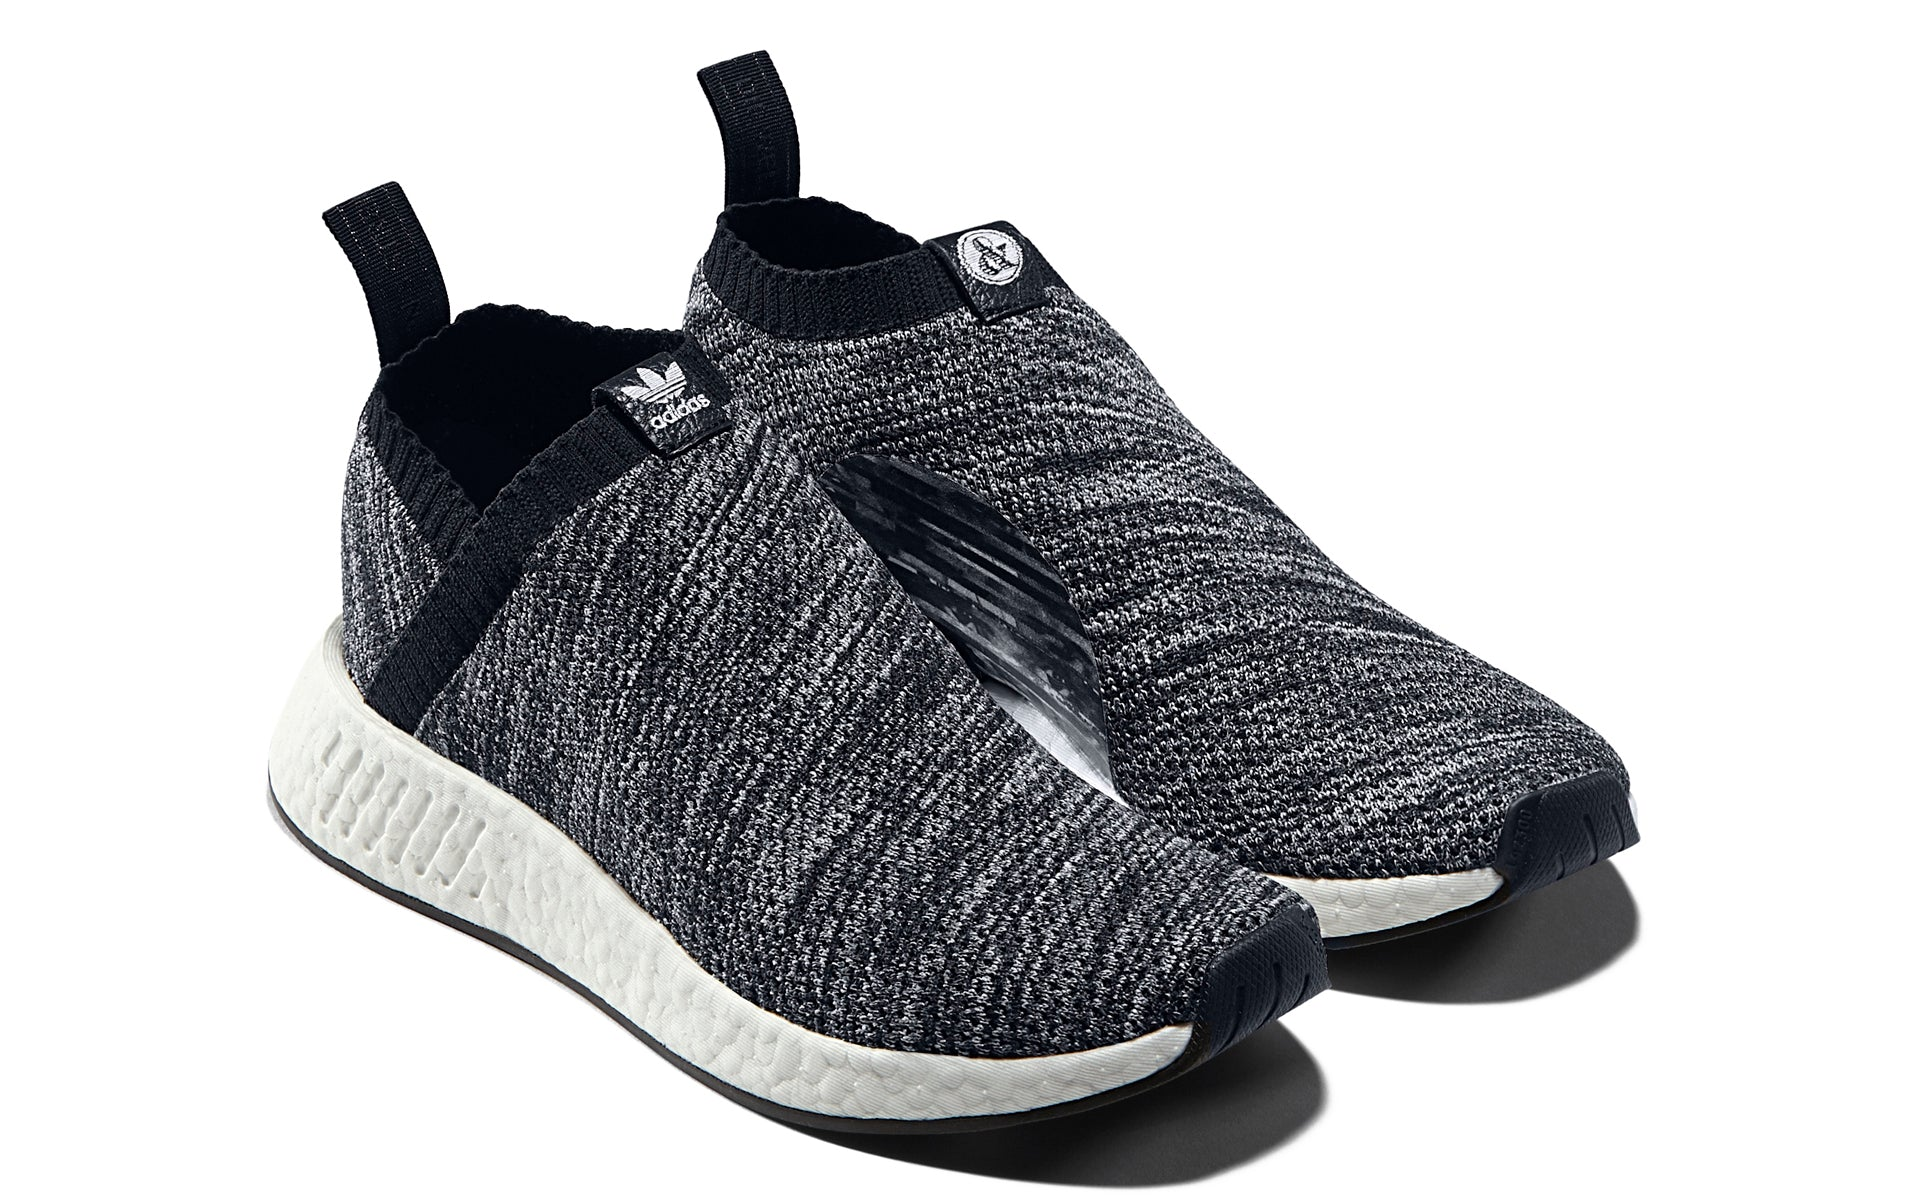 b8f0b332c3be1 UA Sons NMD CS2 PK in Core Black White